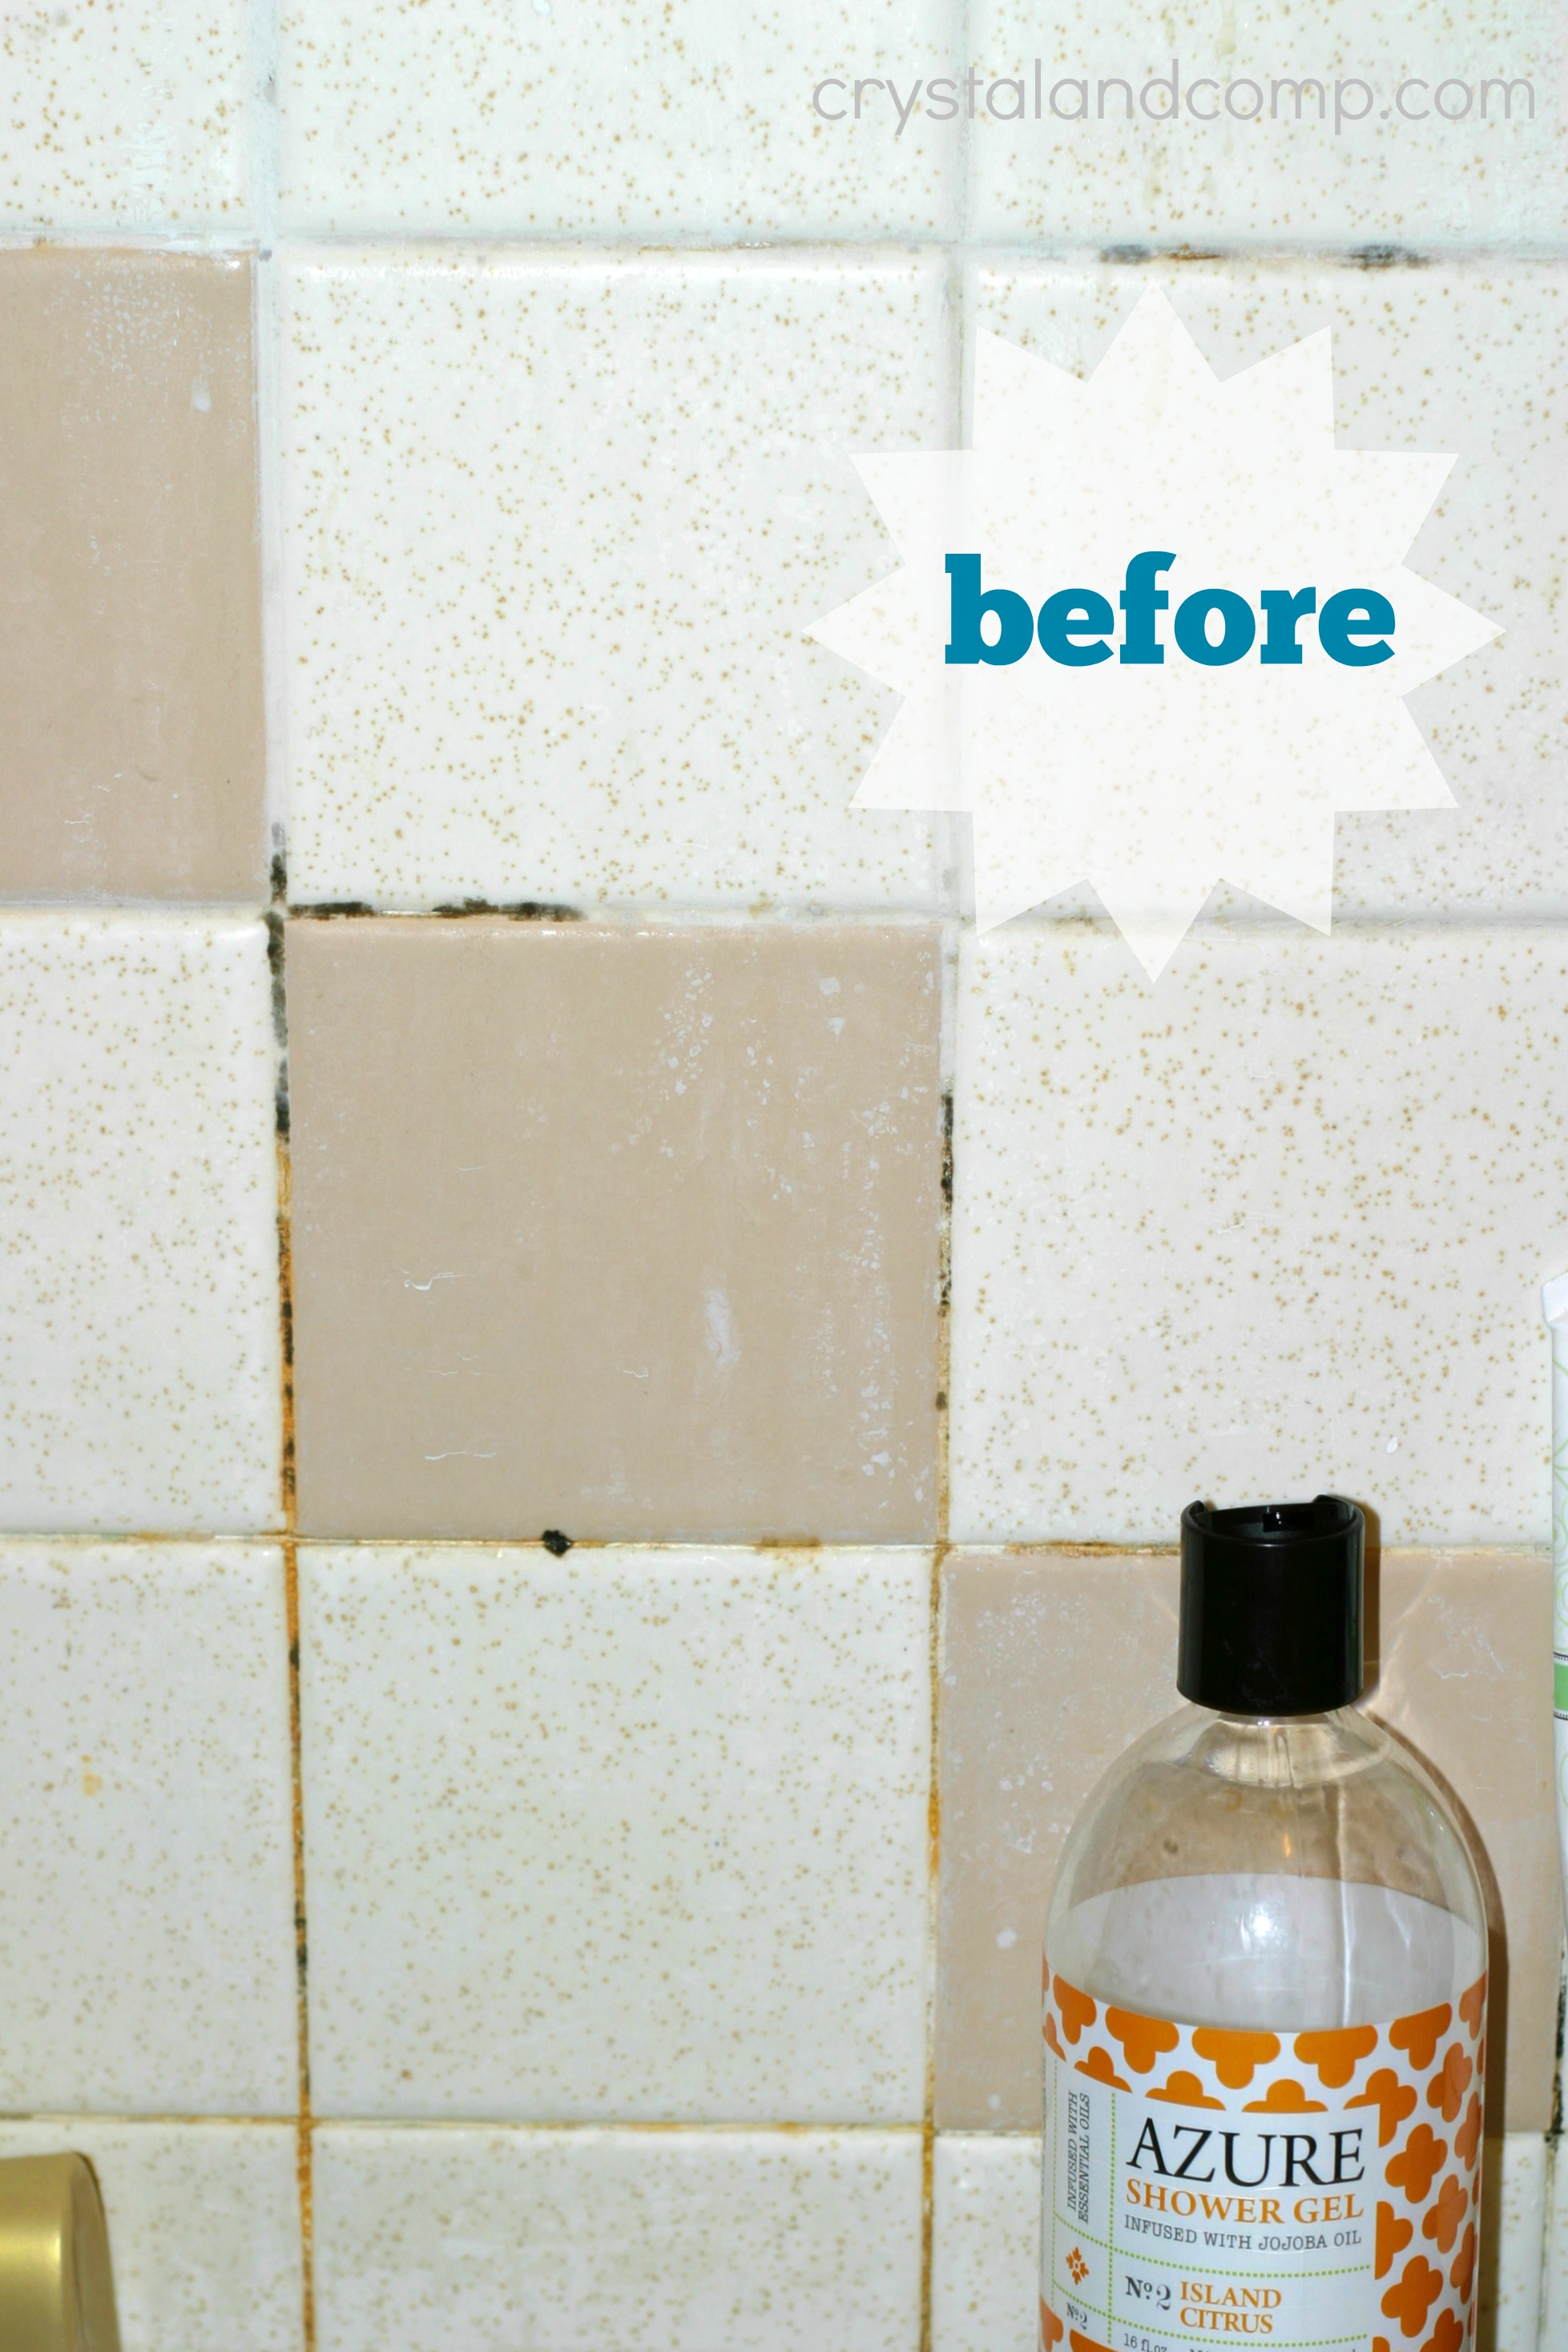 Store Bought Bathroom Mold Cleaner | CrystalandComp.com